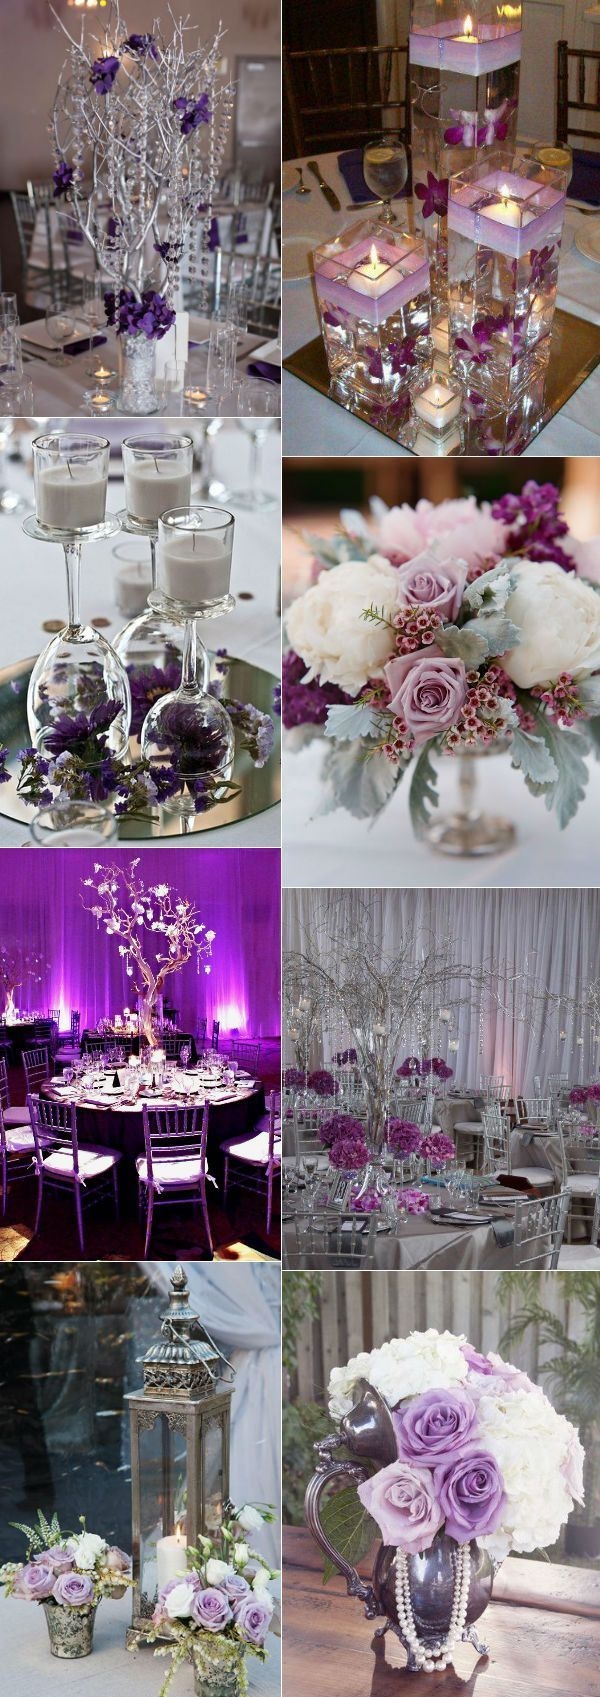 www.elegantweddinginvites.com wp-content uploads 2016 05 stunning-purple-and-silver-wedding-decorations-and-centerpieces.jpg